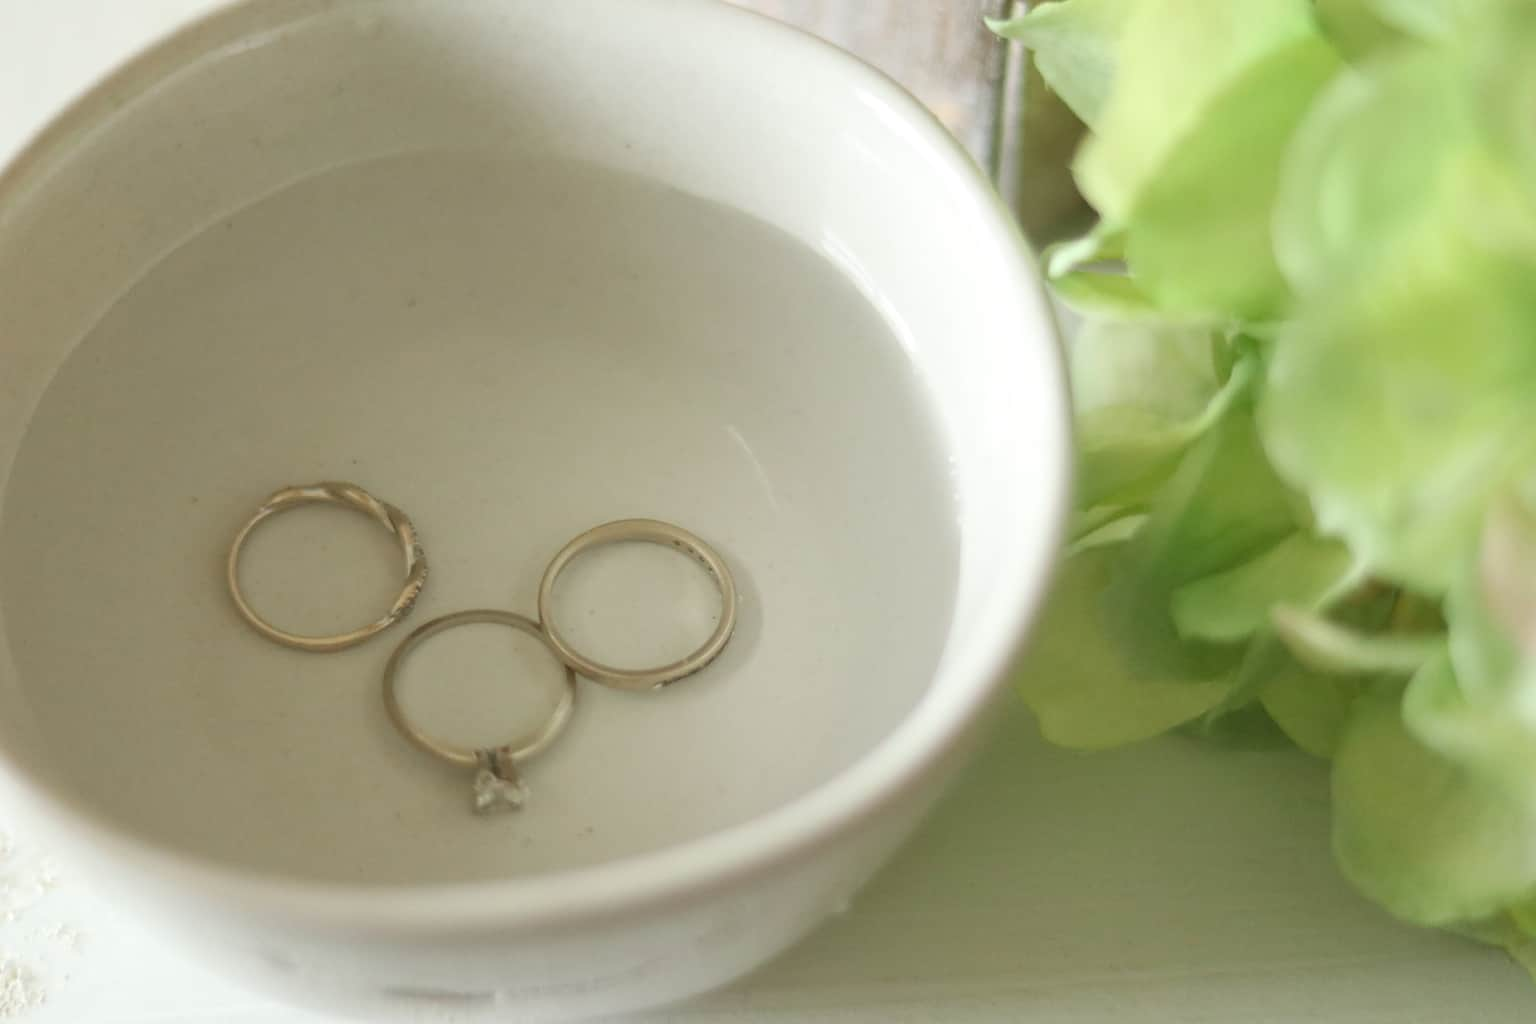 cleaning rings in homemade jewelry cleaner solution